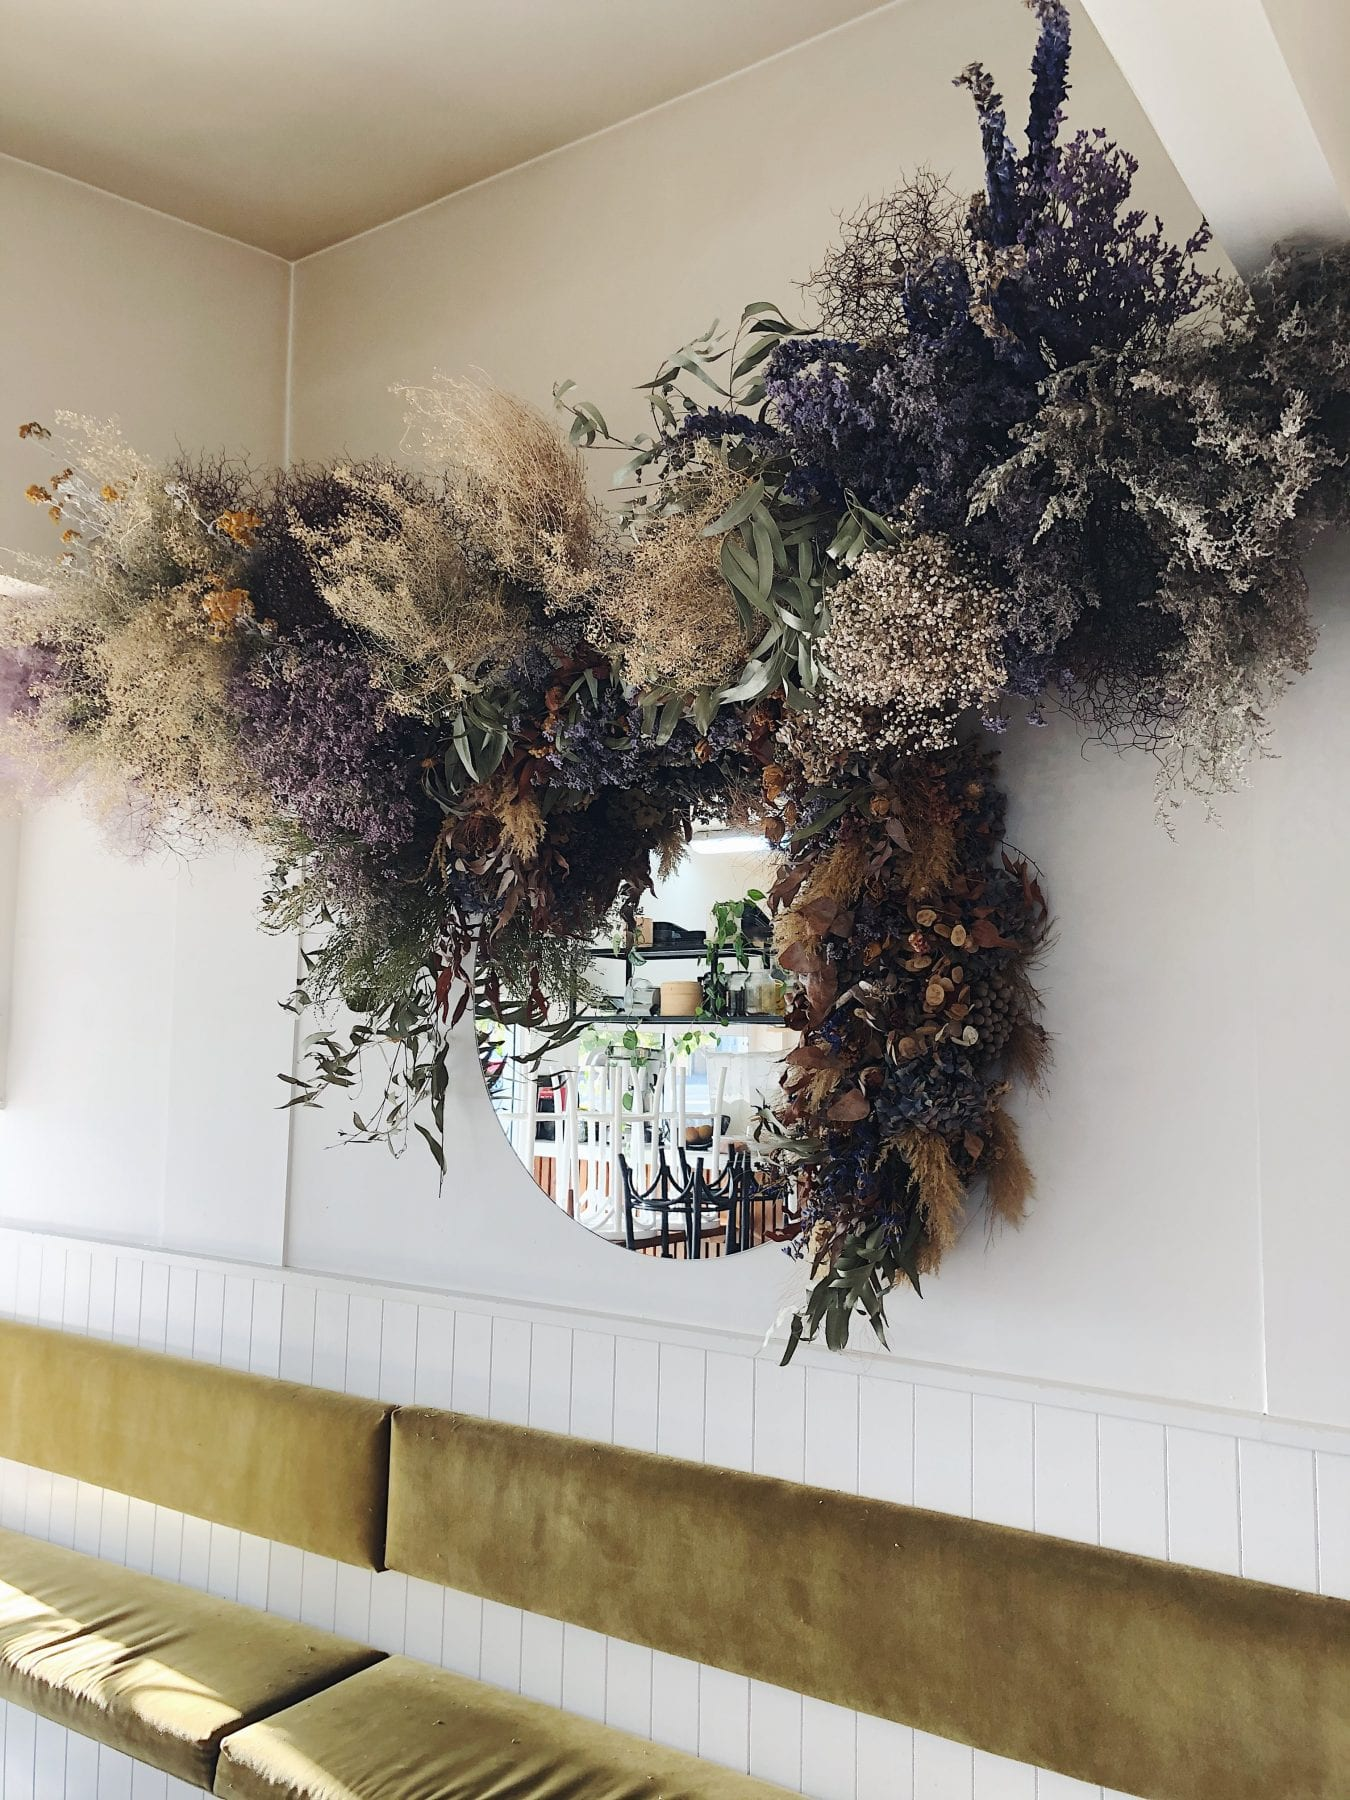 Stunning large floral arrangement around mirror from On My Hand Floral and Styling in Tauranga.